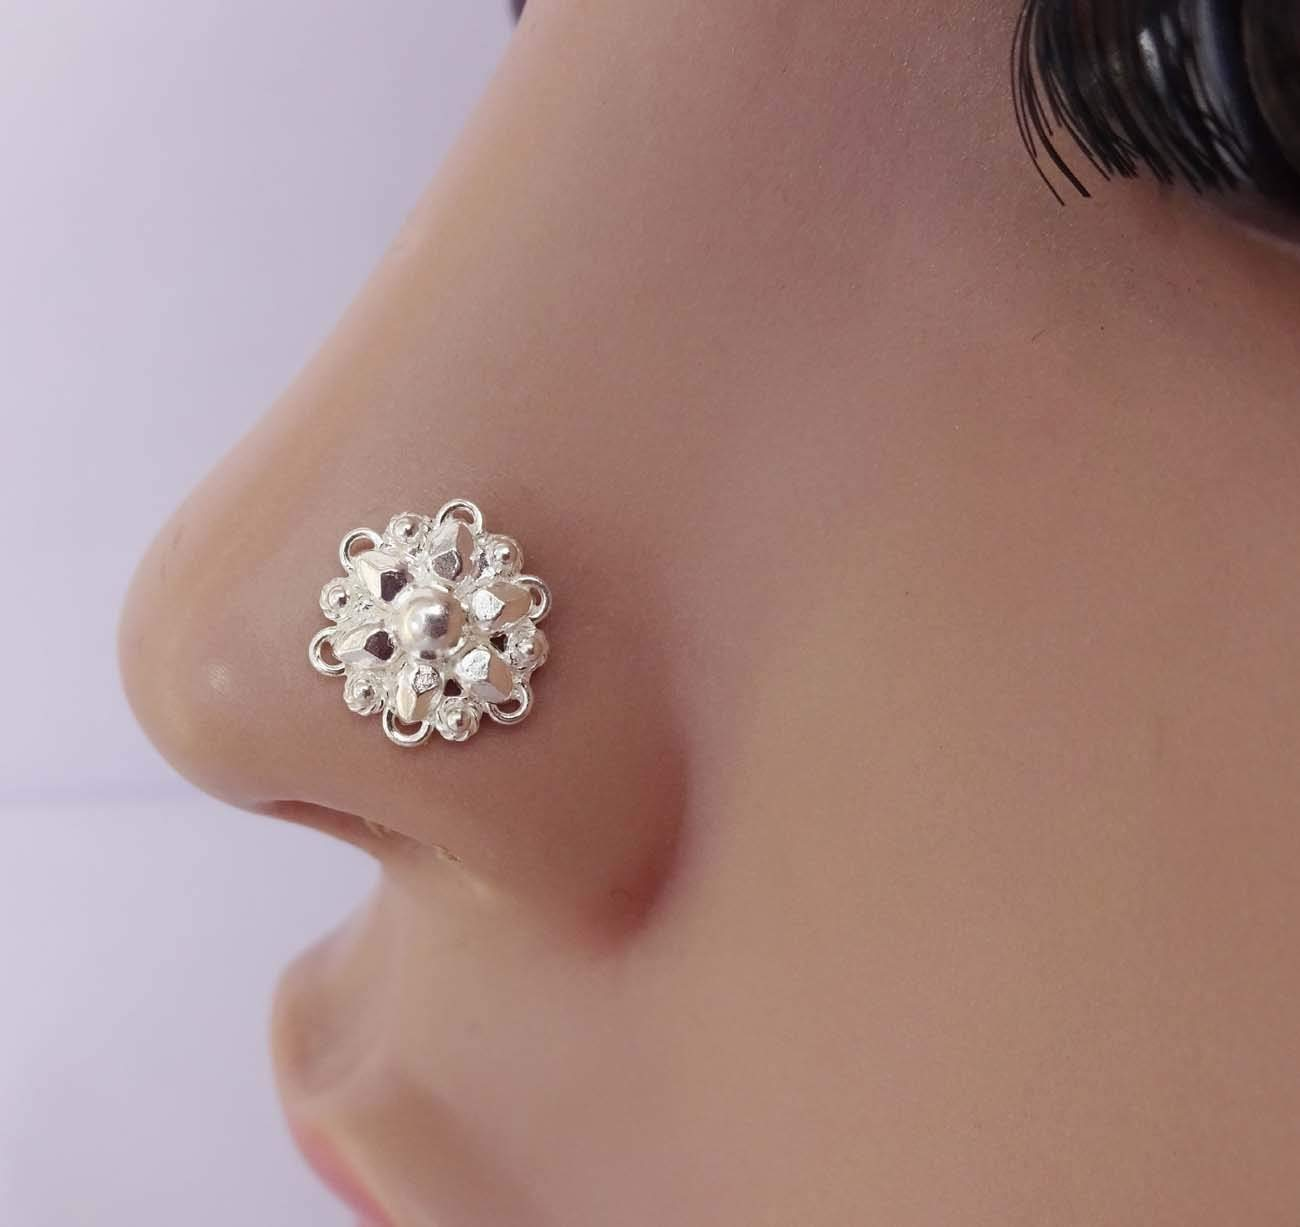 Cheap 20g Nose Stud Find 20g Nose Stud Deals On Line At Alibaba Com